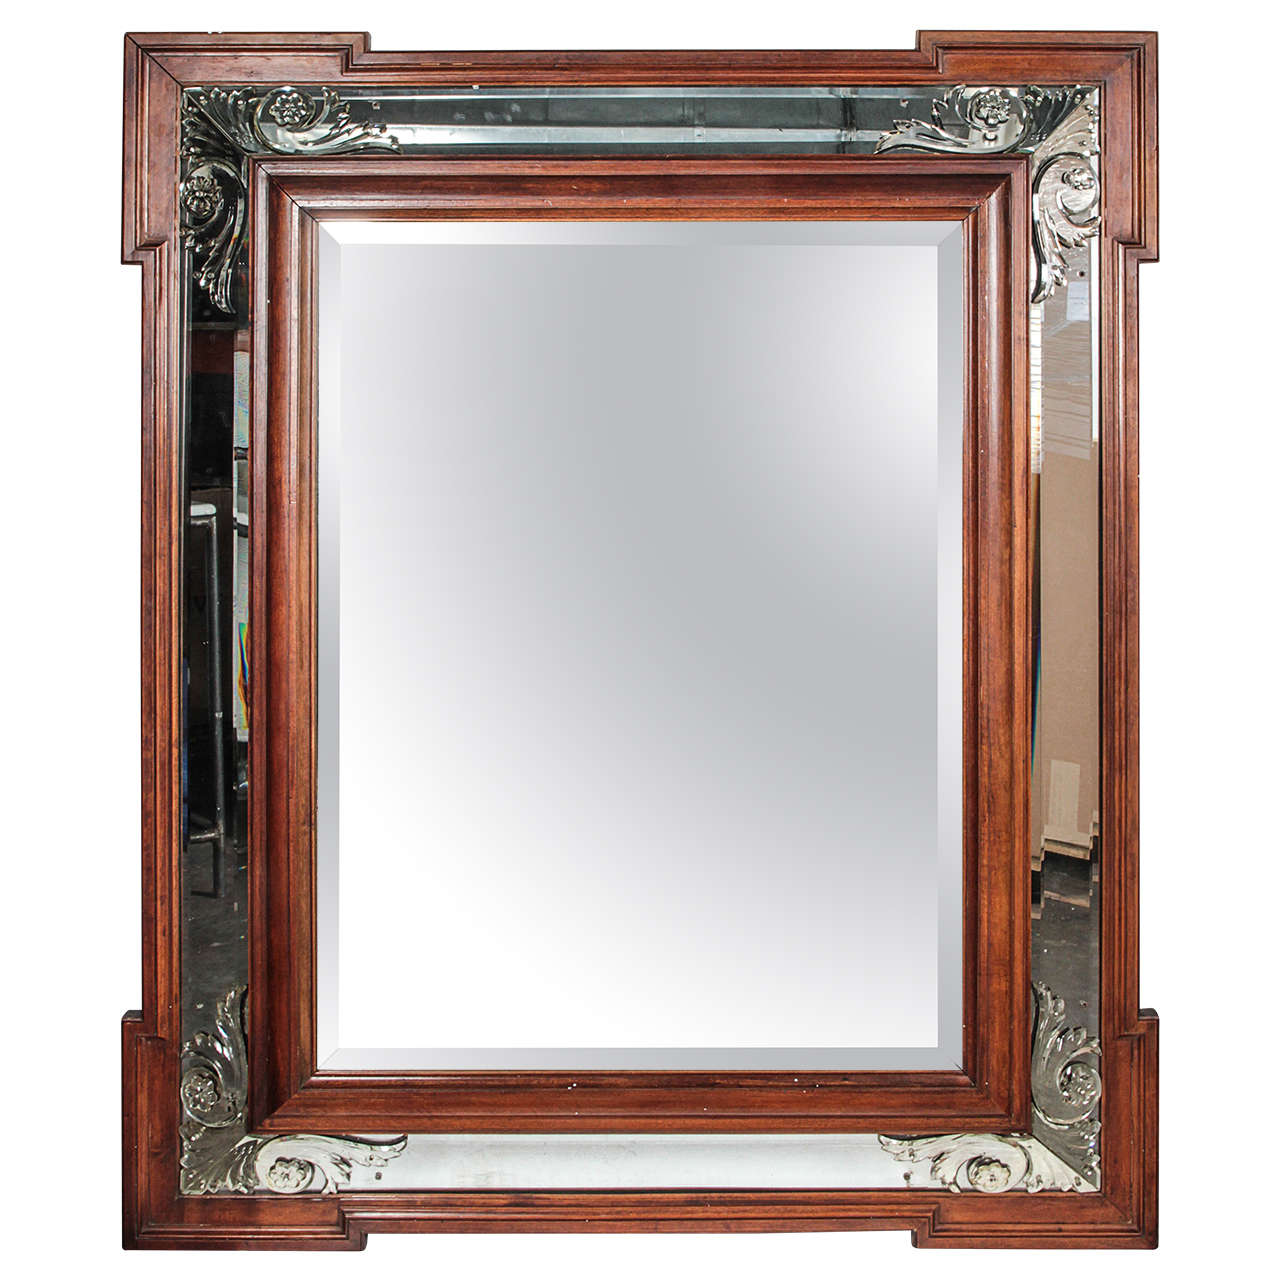 Art deco decorative beveled mirror for sale at 1stdibs for Mirrors for sale